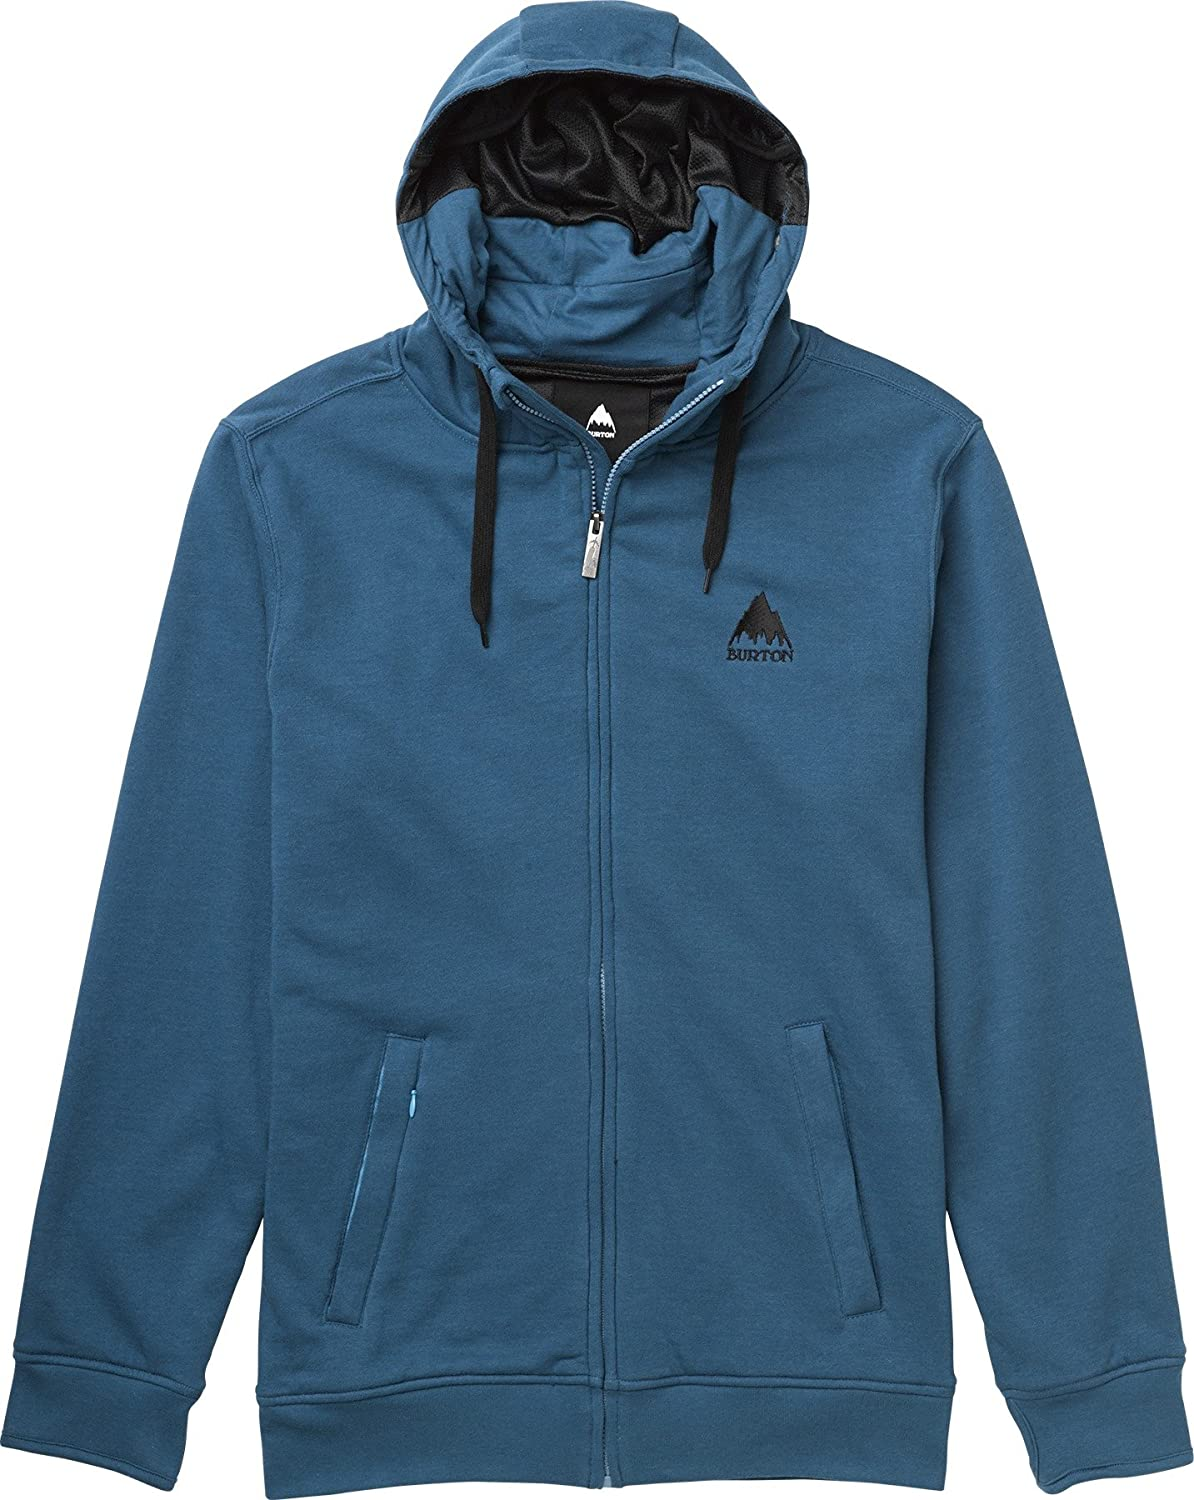 qsw dailymotion burton hoodie video review sleeper